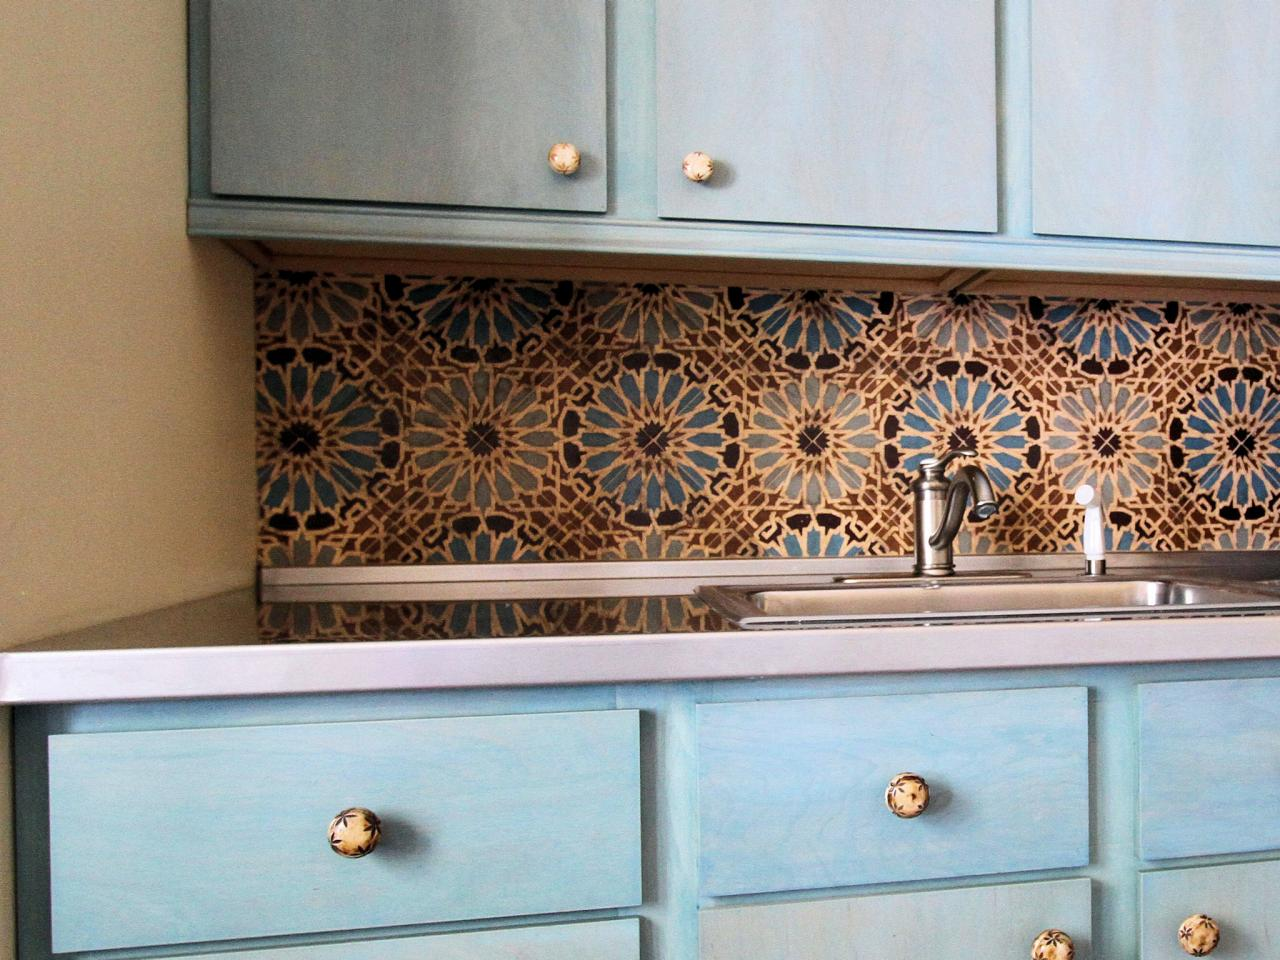 Kitchen tile backsplash ideas pictures tips from hgtv hgtv Backsplash wall tile